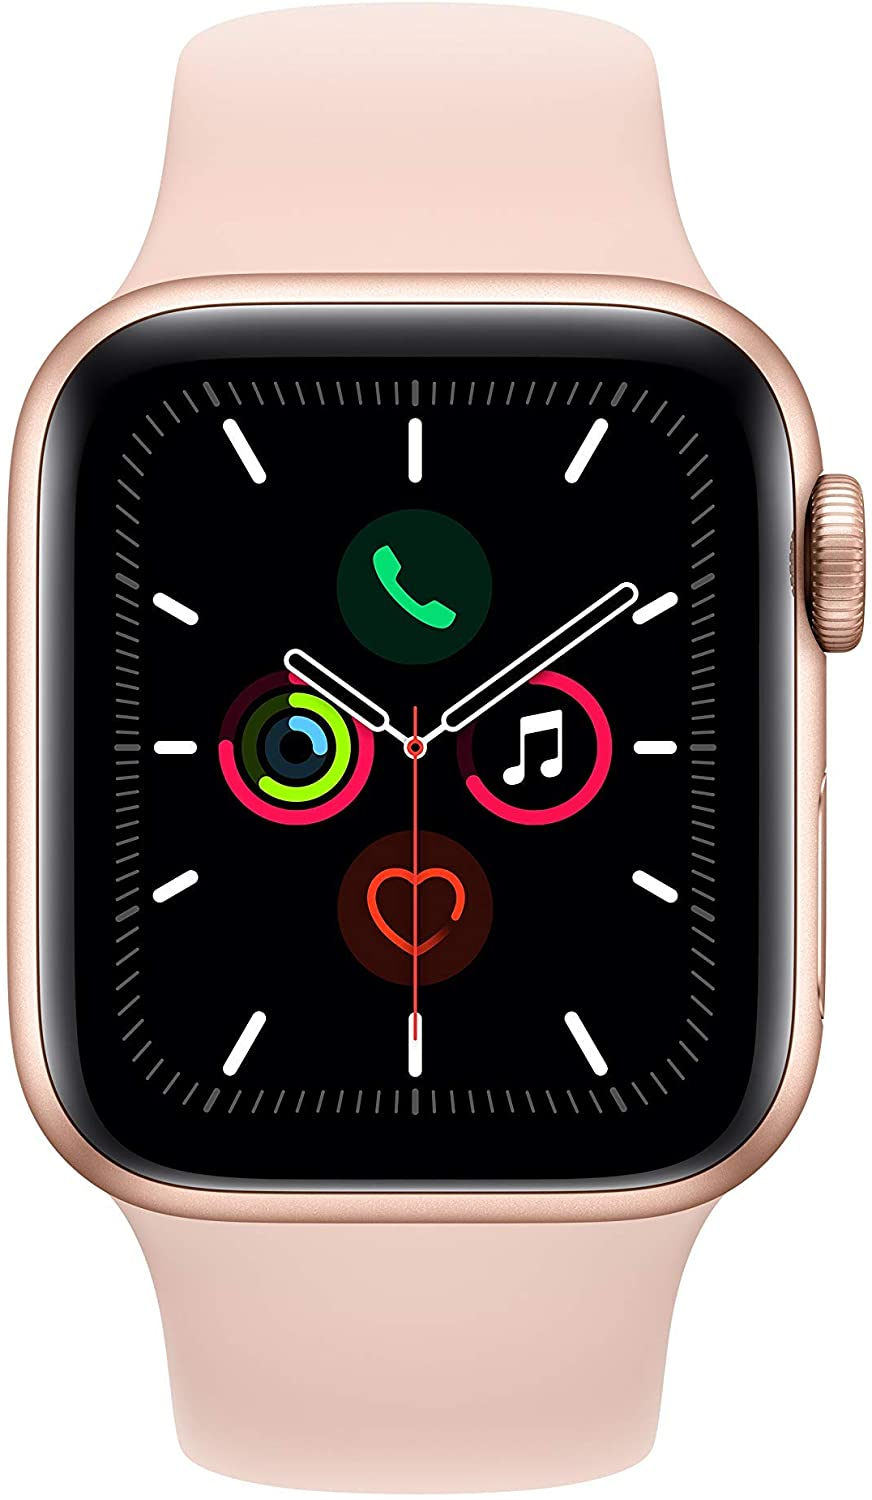 Apple Watch Series 5-best review swimming watch for the traveler